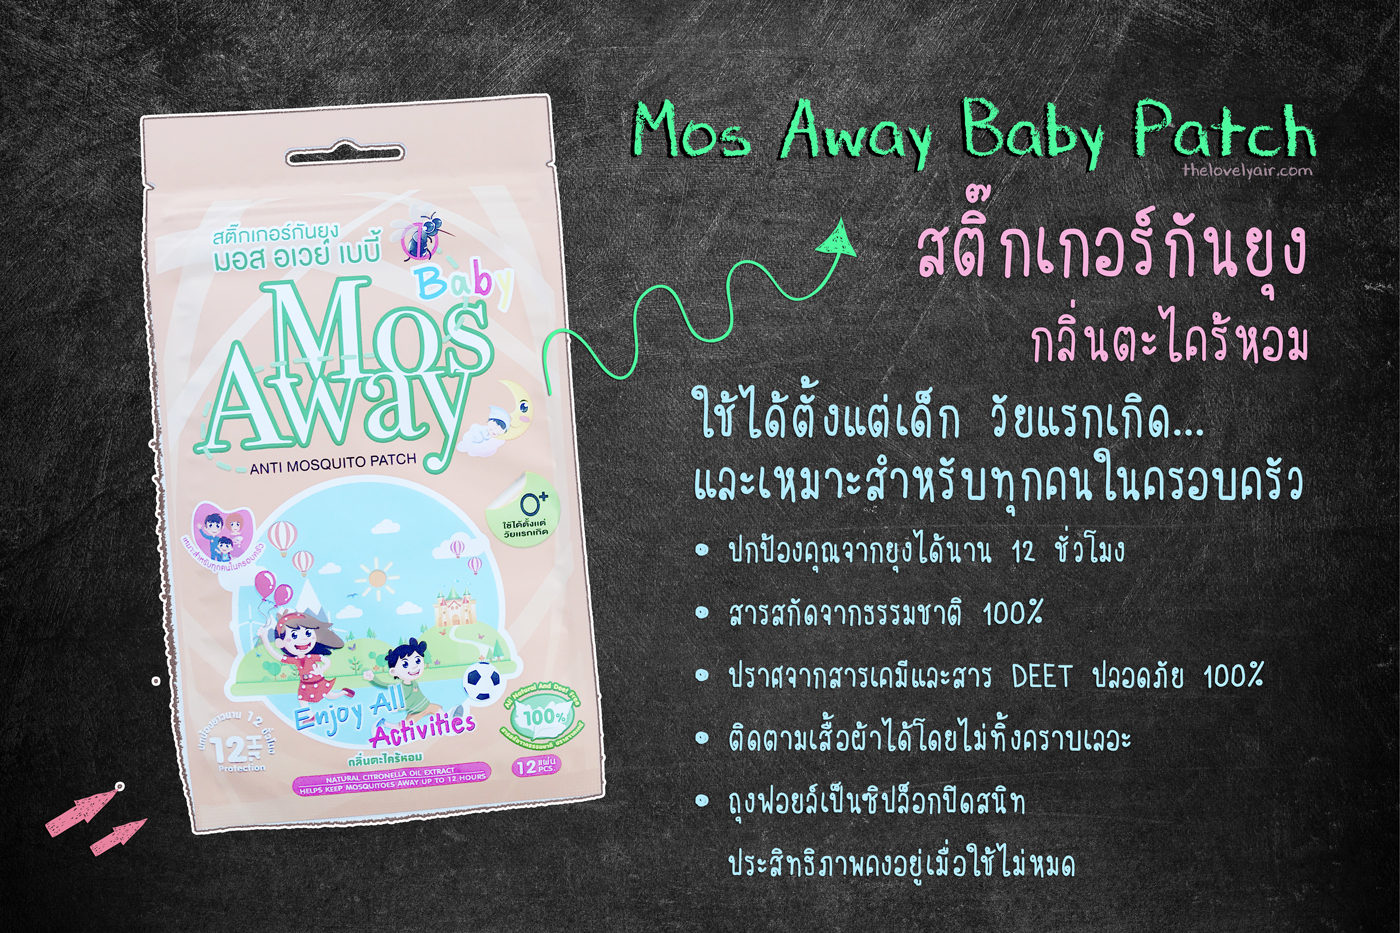 mosaway-review-4